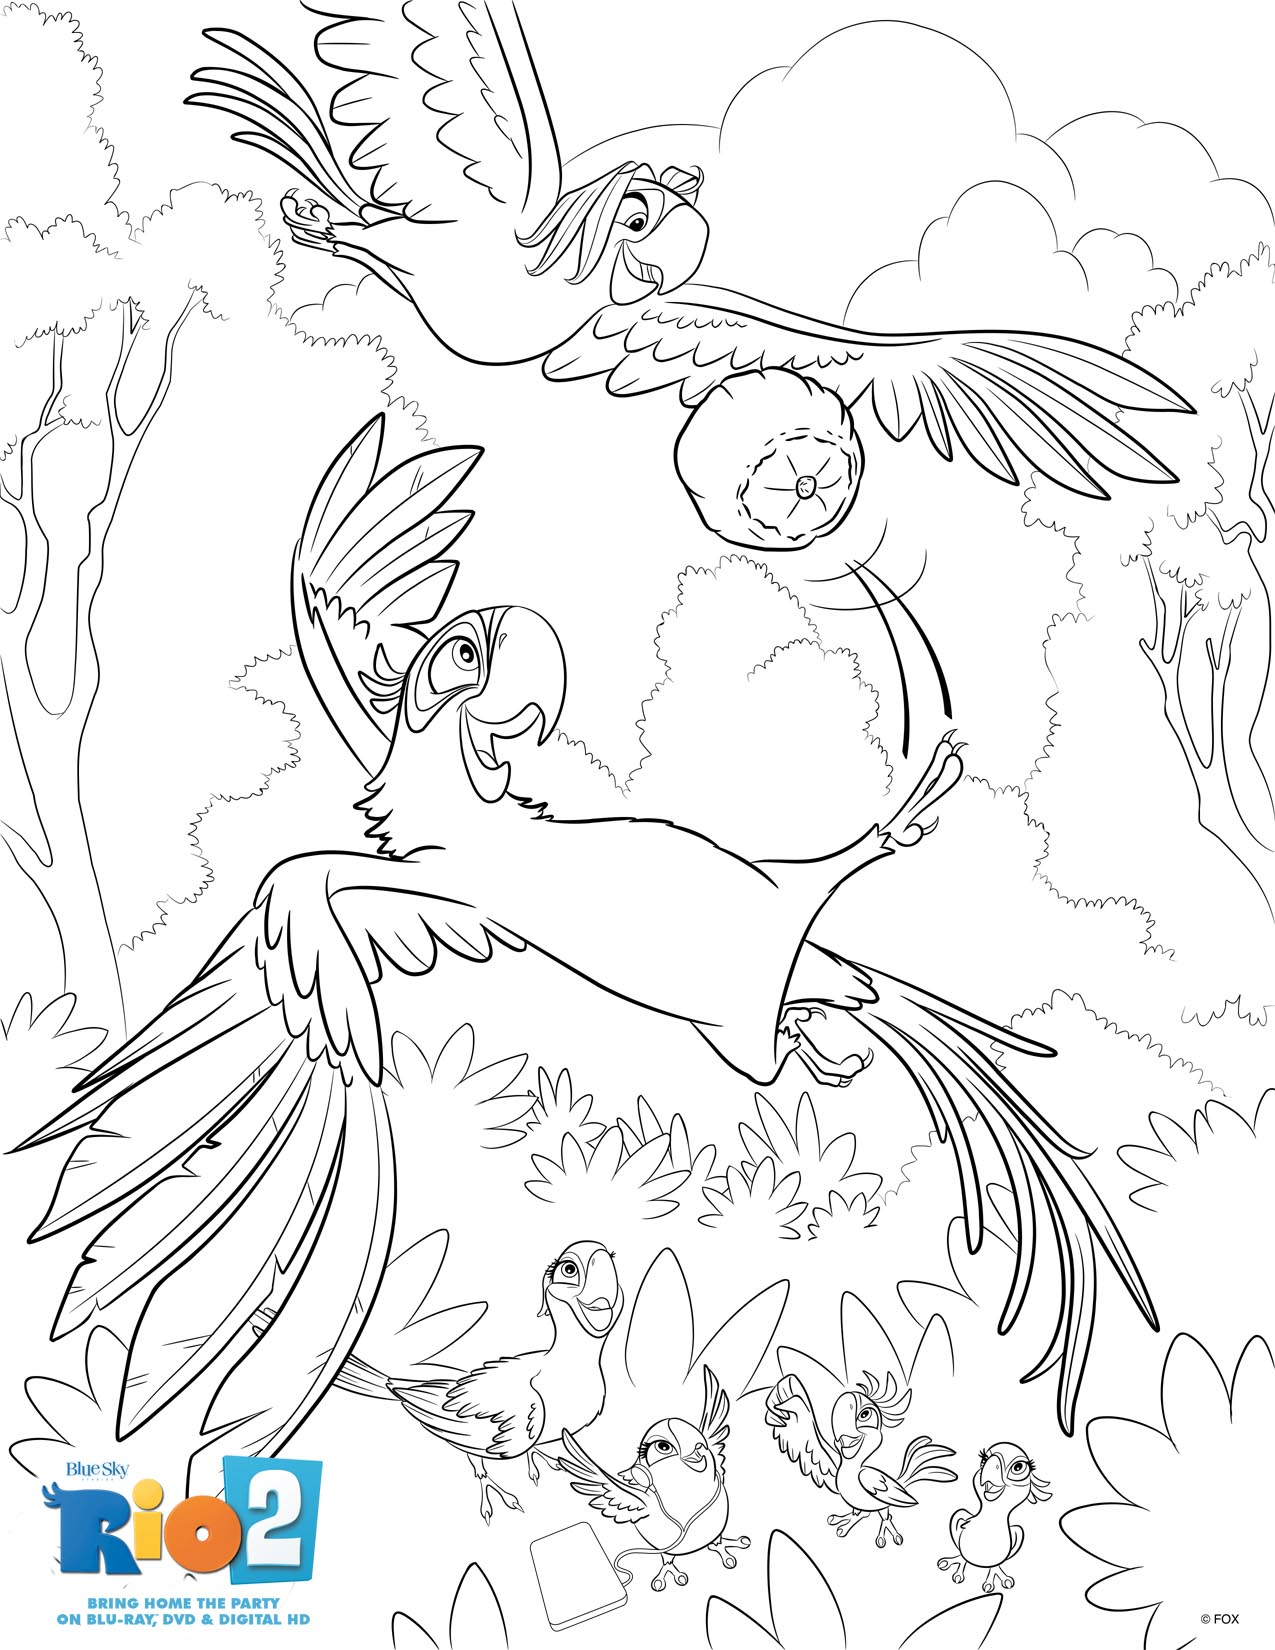 Coloring Book Mr. Fox Colouring Pages Child PNG, Clipart, Adult ... | 1650x1275